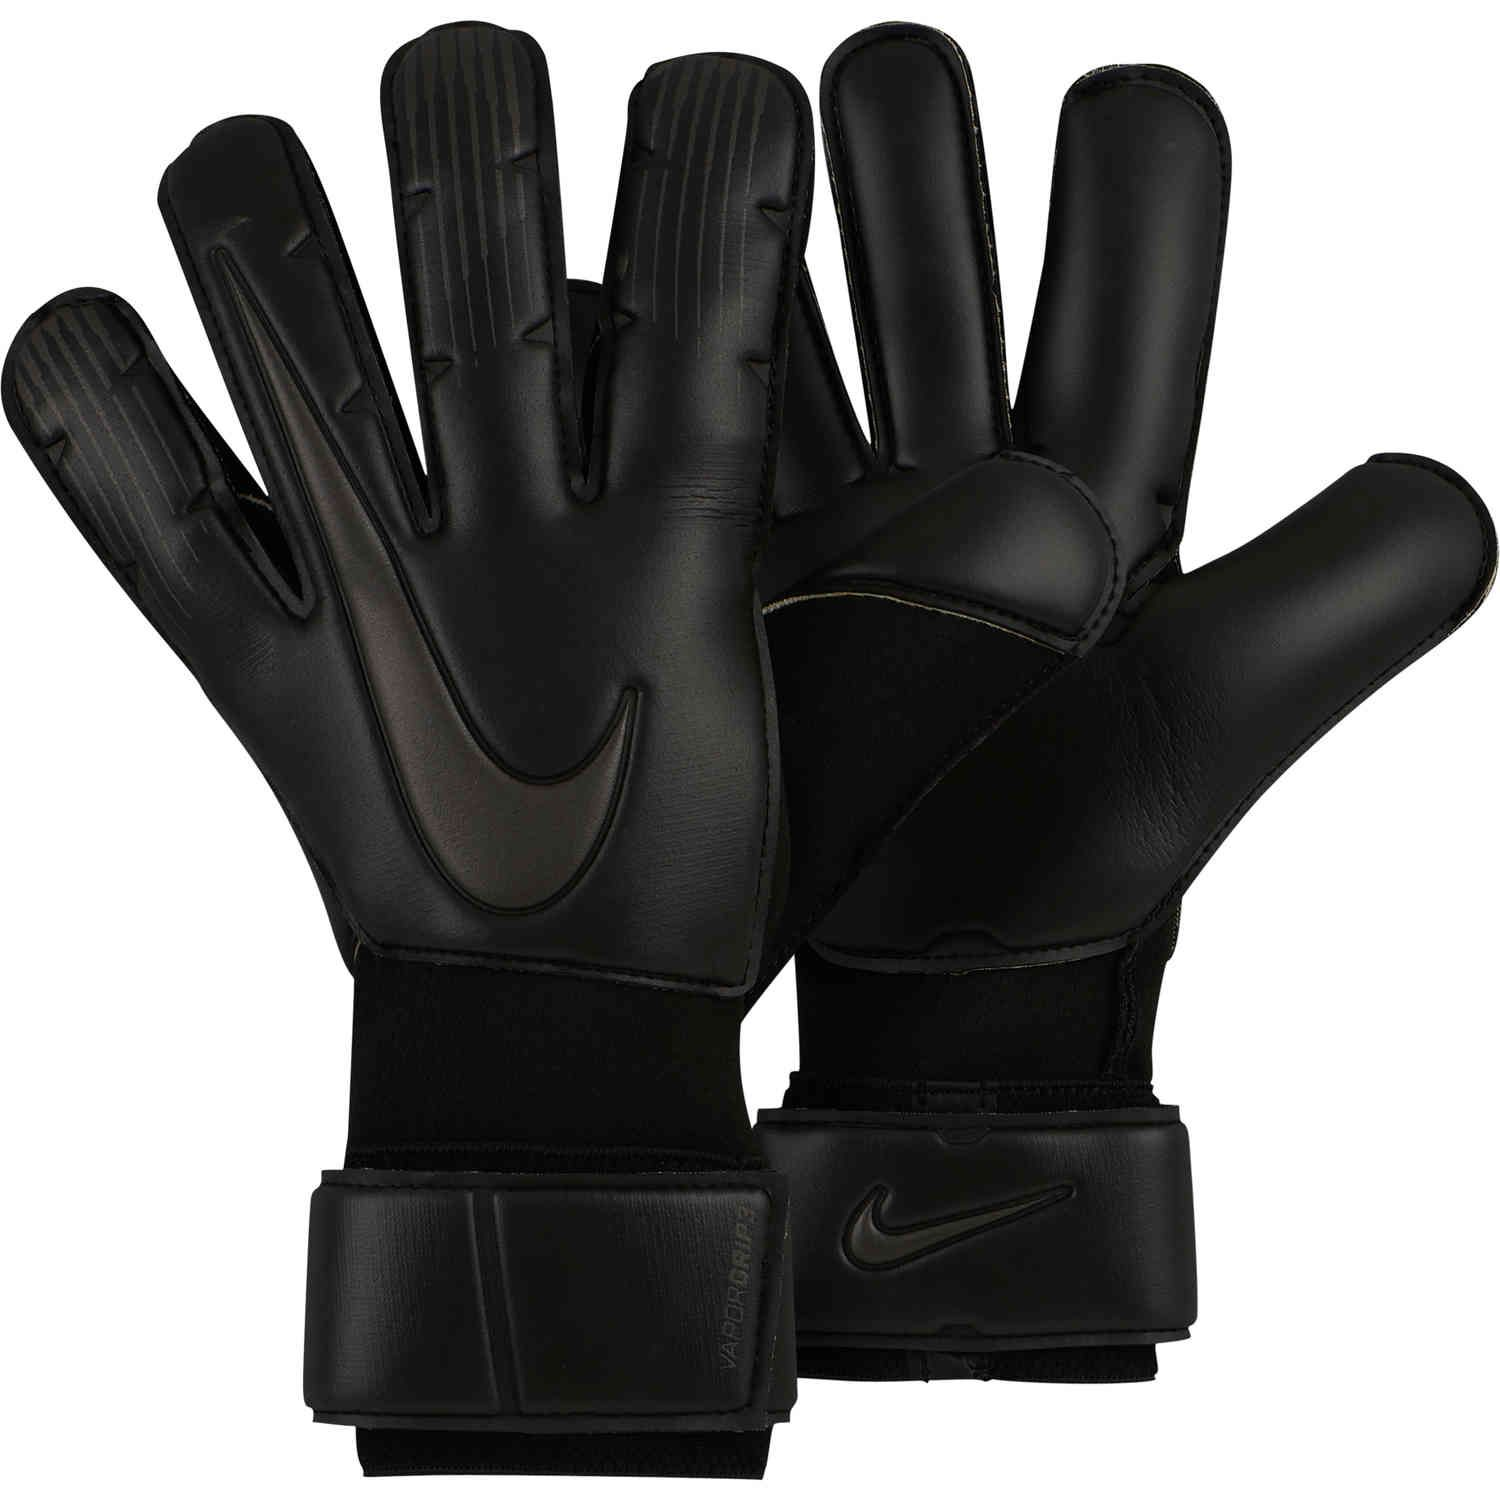 Nike Vapor Grip3 Goalkeeper Gloves Triple Black Goalkeeper Gloves Goalkeeper Gloves